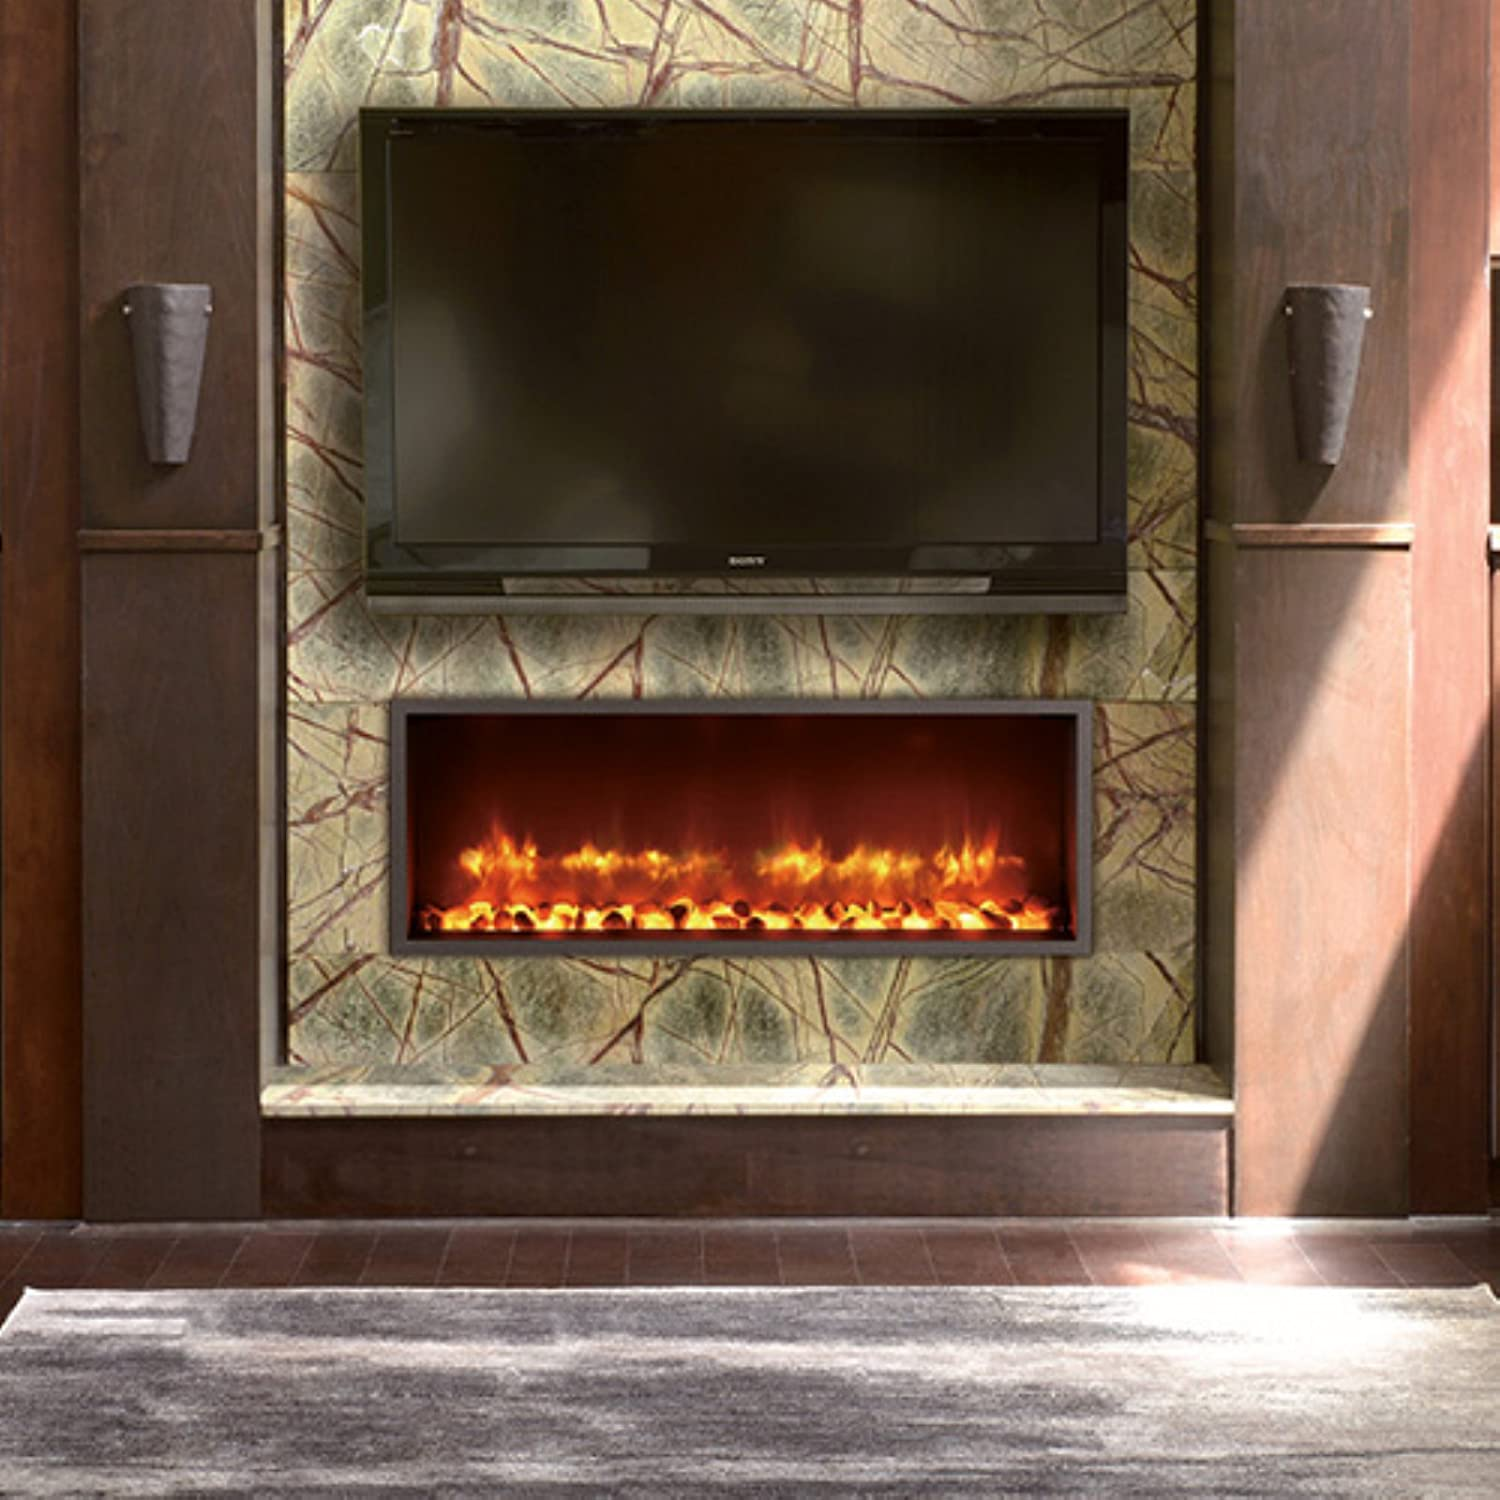 fireplaces glass catalog mount front crystal product new wall group ghp electric inc black fireplace muskoka curved